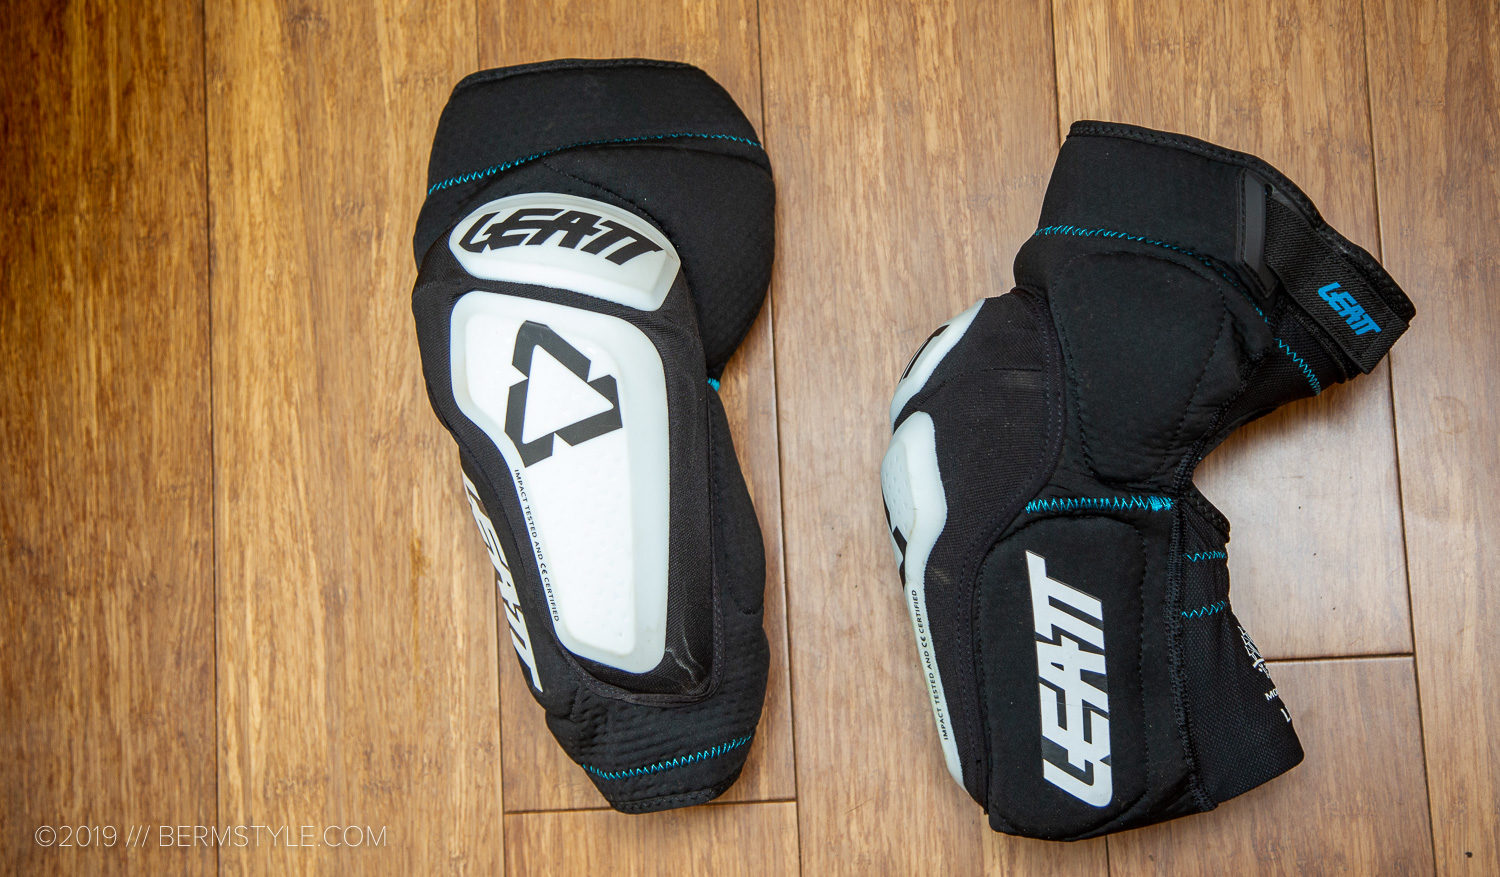 The Leatt 3DF 6.0 Knee Guards